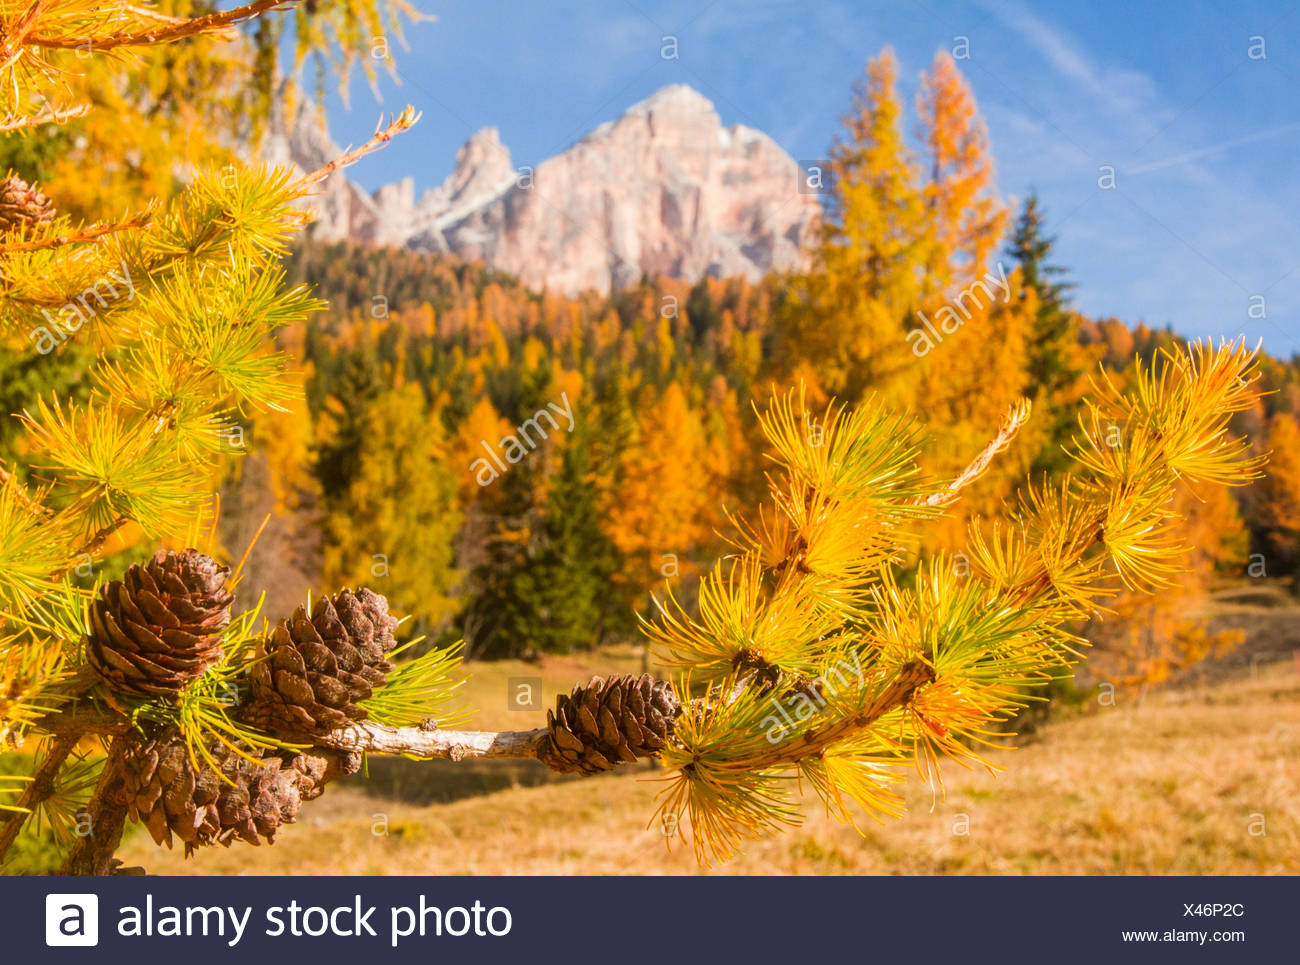 Europe, Italy, Veneto, Cortina d' Ampezzo, Autumn between larix and pinecones in Dolomites - Stock Image